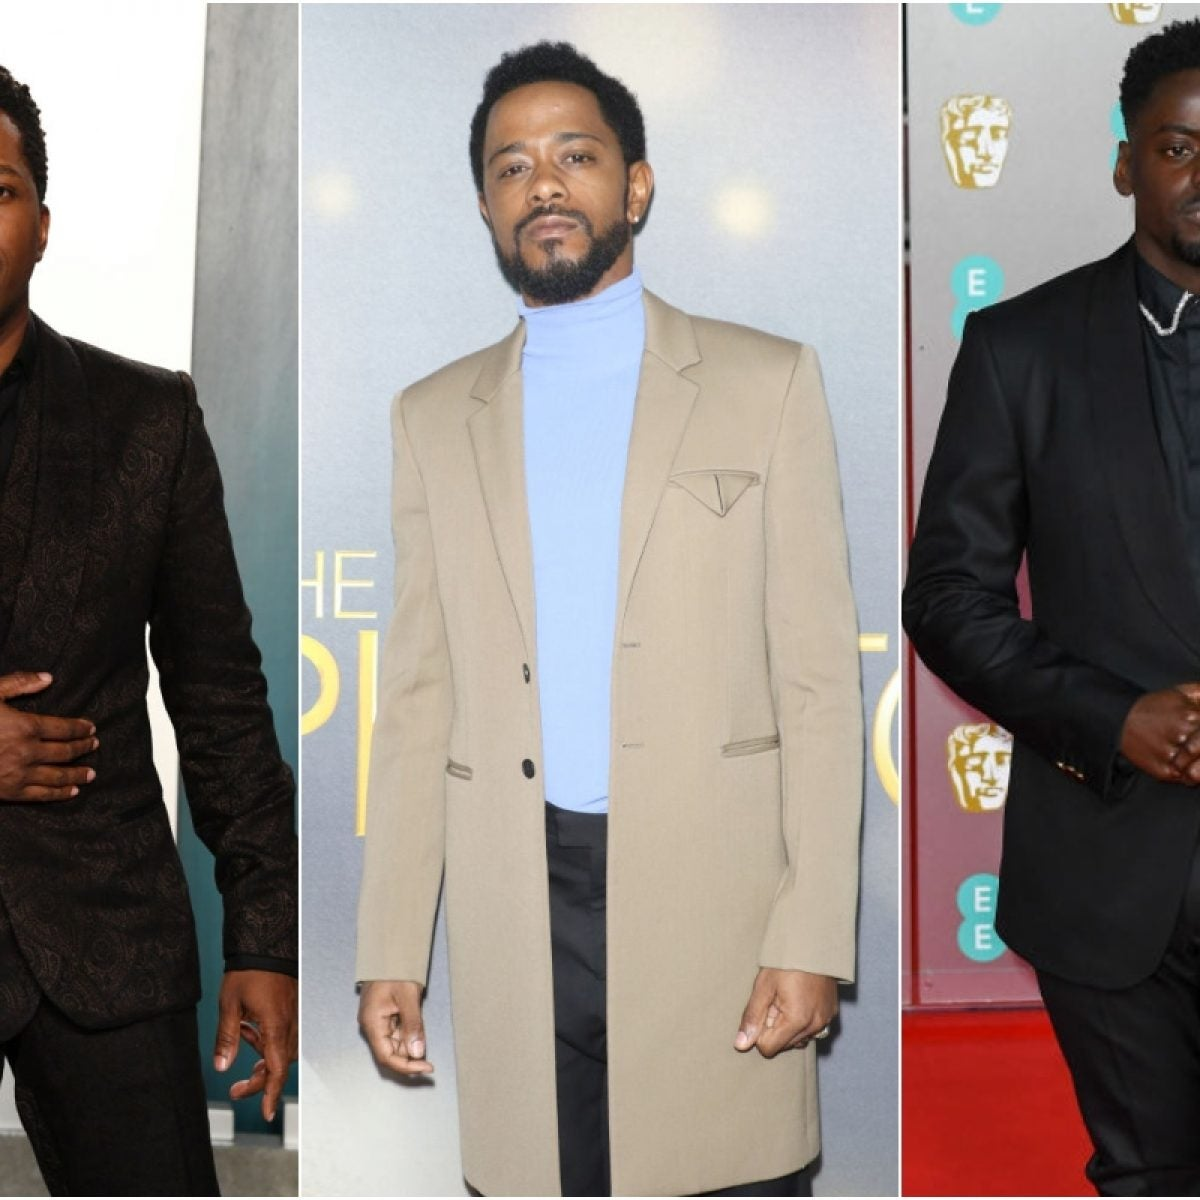 2021 Oscar Nominations: LaKeith Stanfield, Daniel Kaluuya, Leslie Odom, Jr. Up For Best Supporting Actor